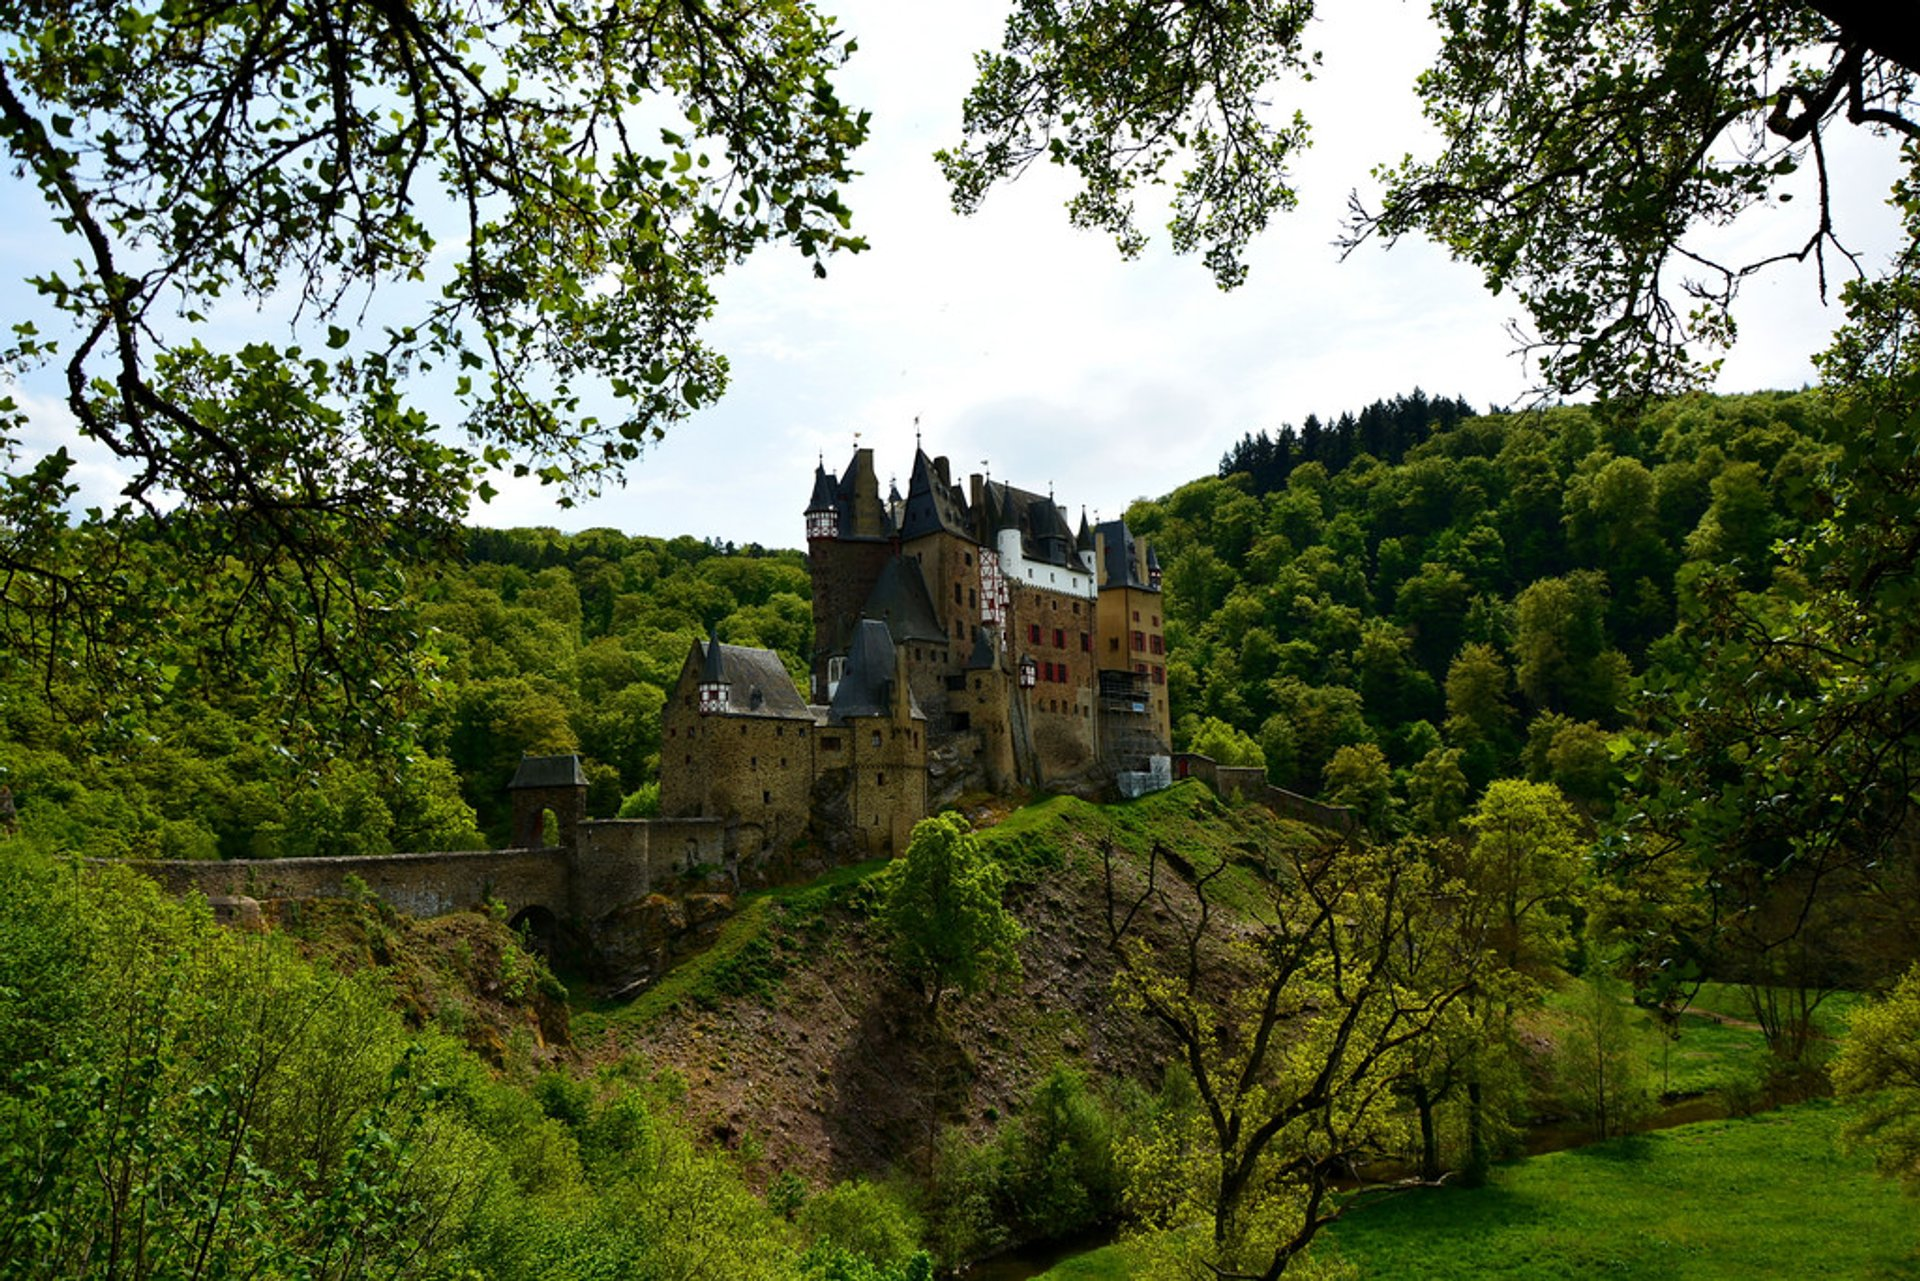 Best time to see Eltz Castle in Germany 2020